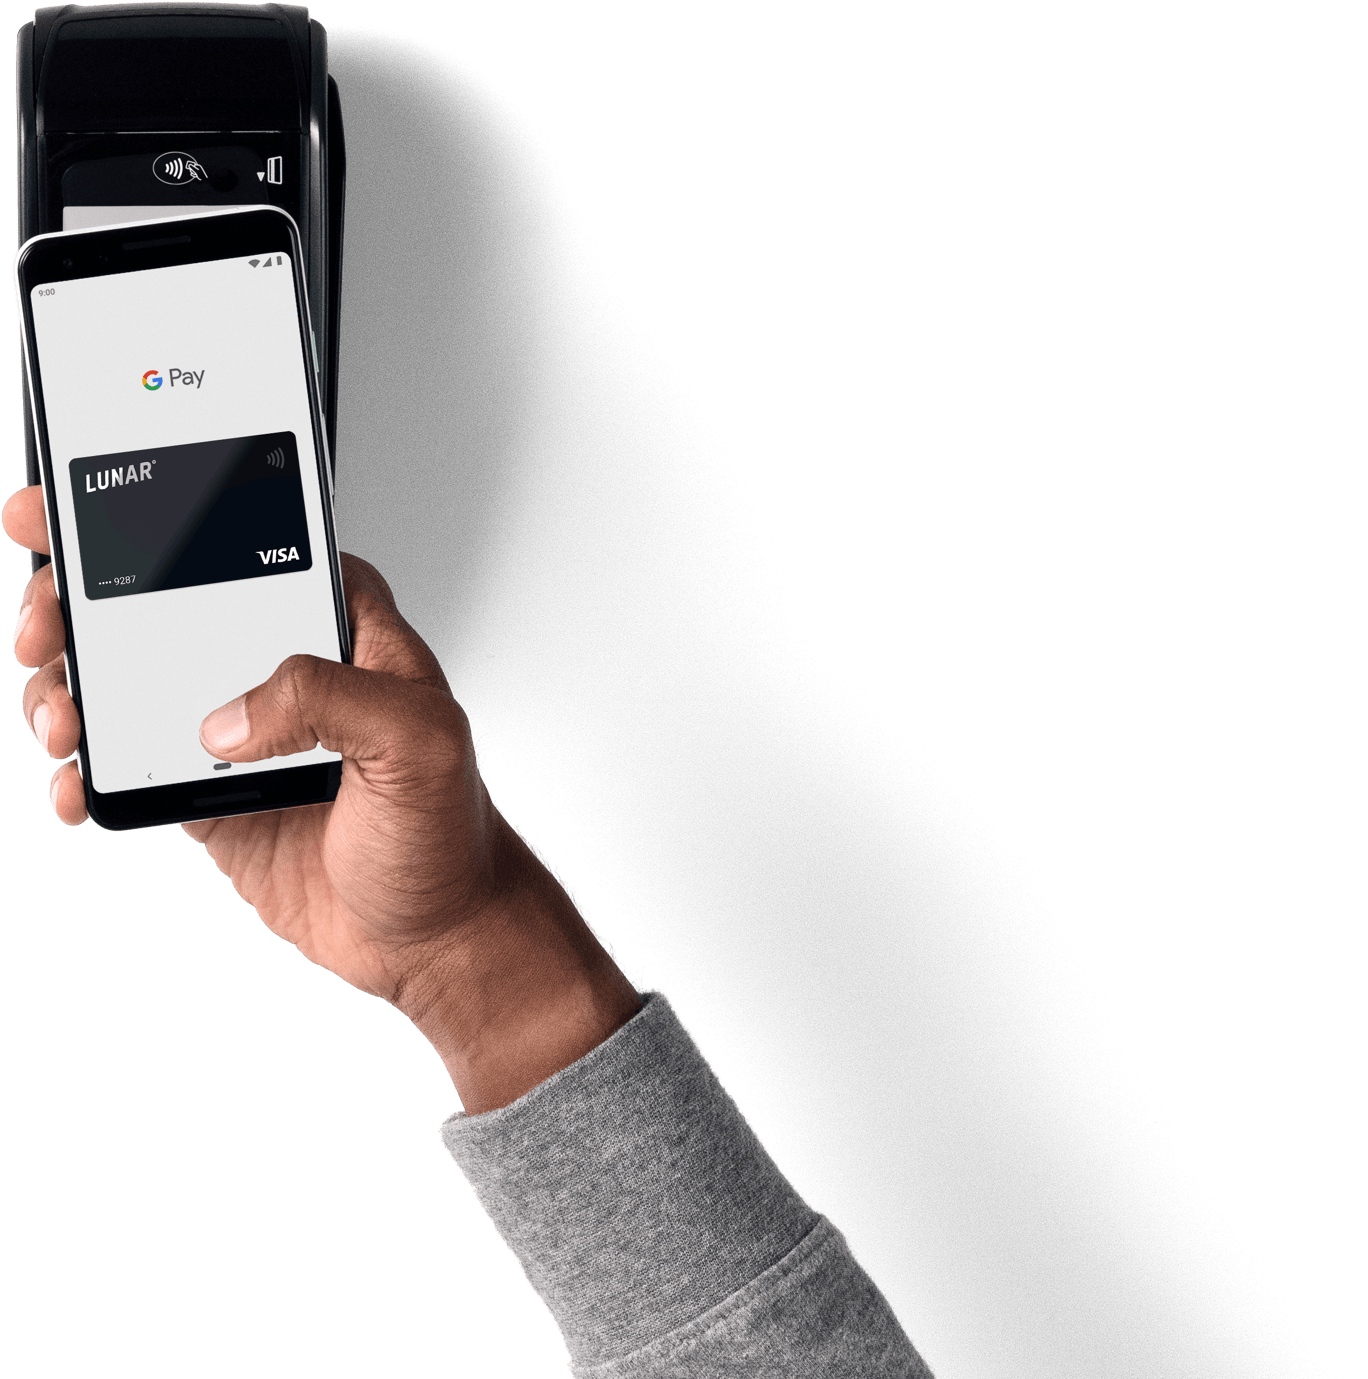 Paying with Google Pay by holding mobile phone over a payment terminal